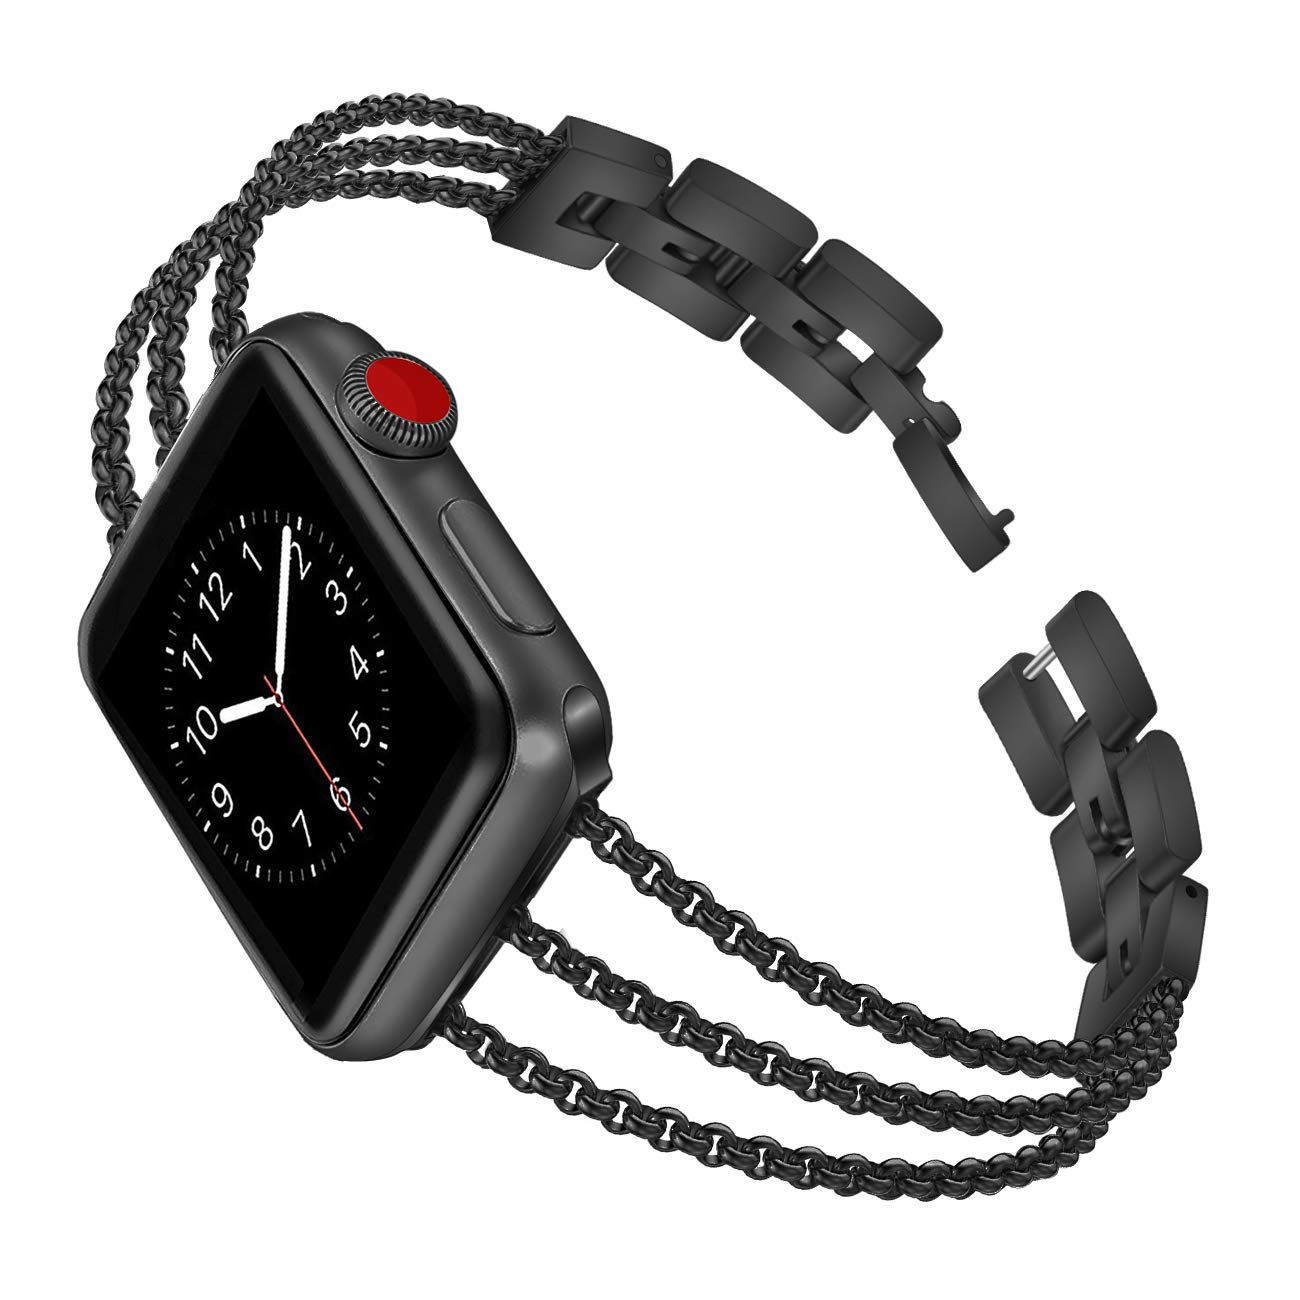 Biaoge Metal Band Compatible for Apple Watch Band Series 4 40mm 44mm/ iWatch Series 3 2 1 38mm 42mm, Adjustable Stainless Steel Replacement Wristband Strap Cuff Bangle Bracelet Accessorie(Black, 42mm)